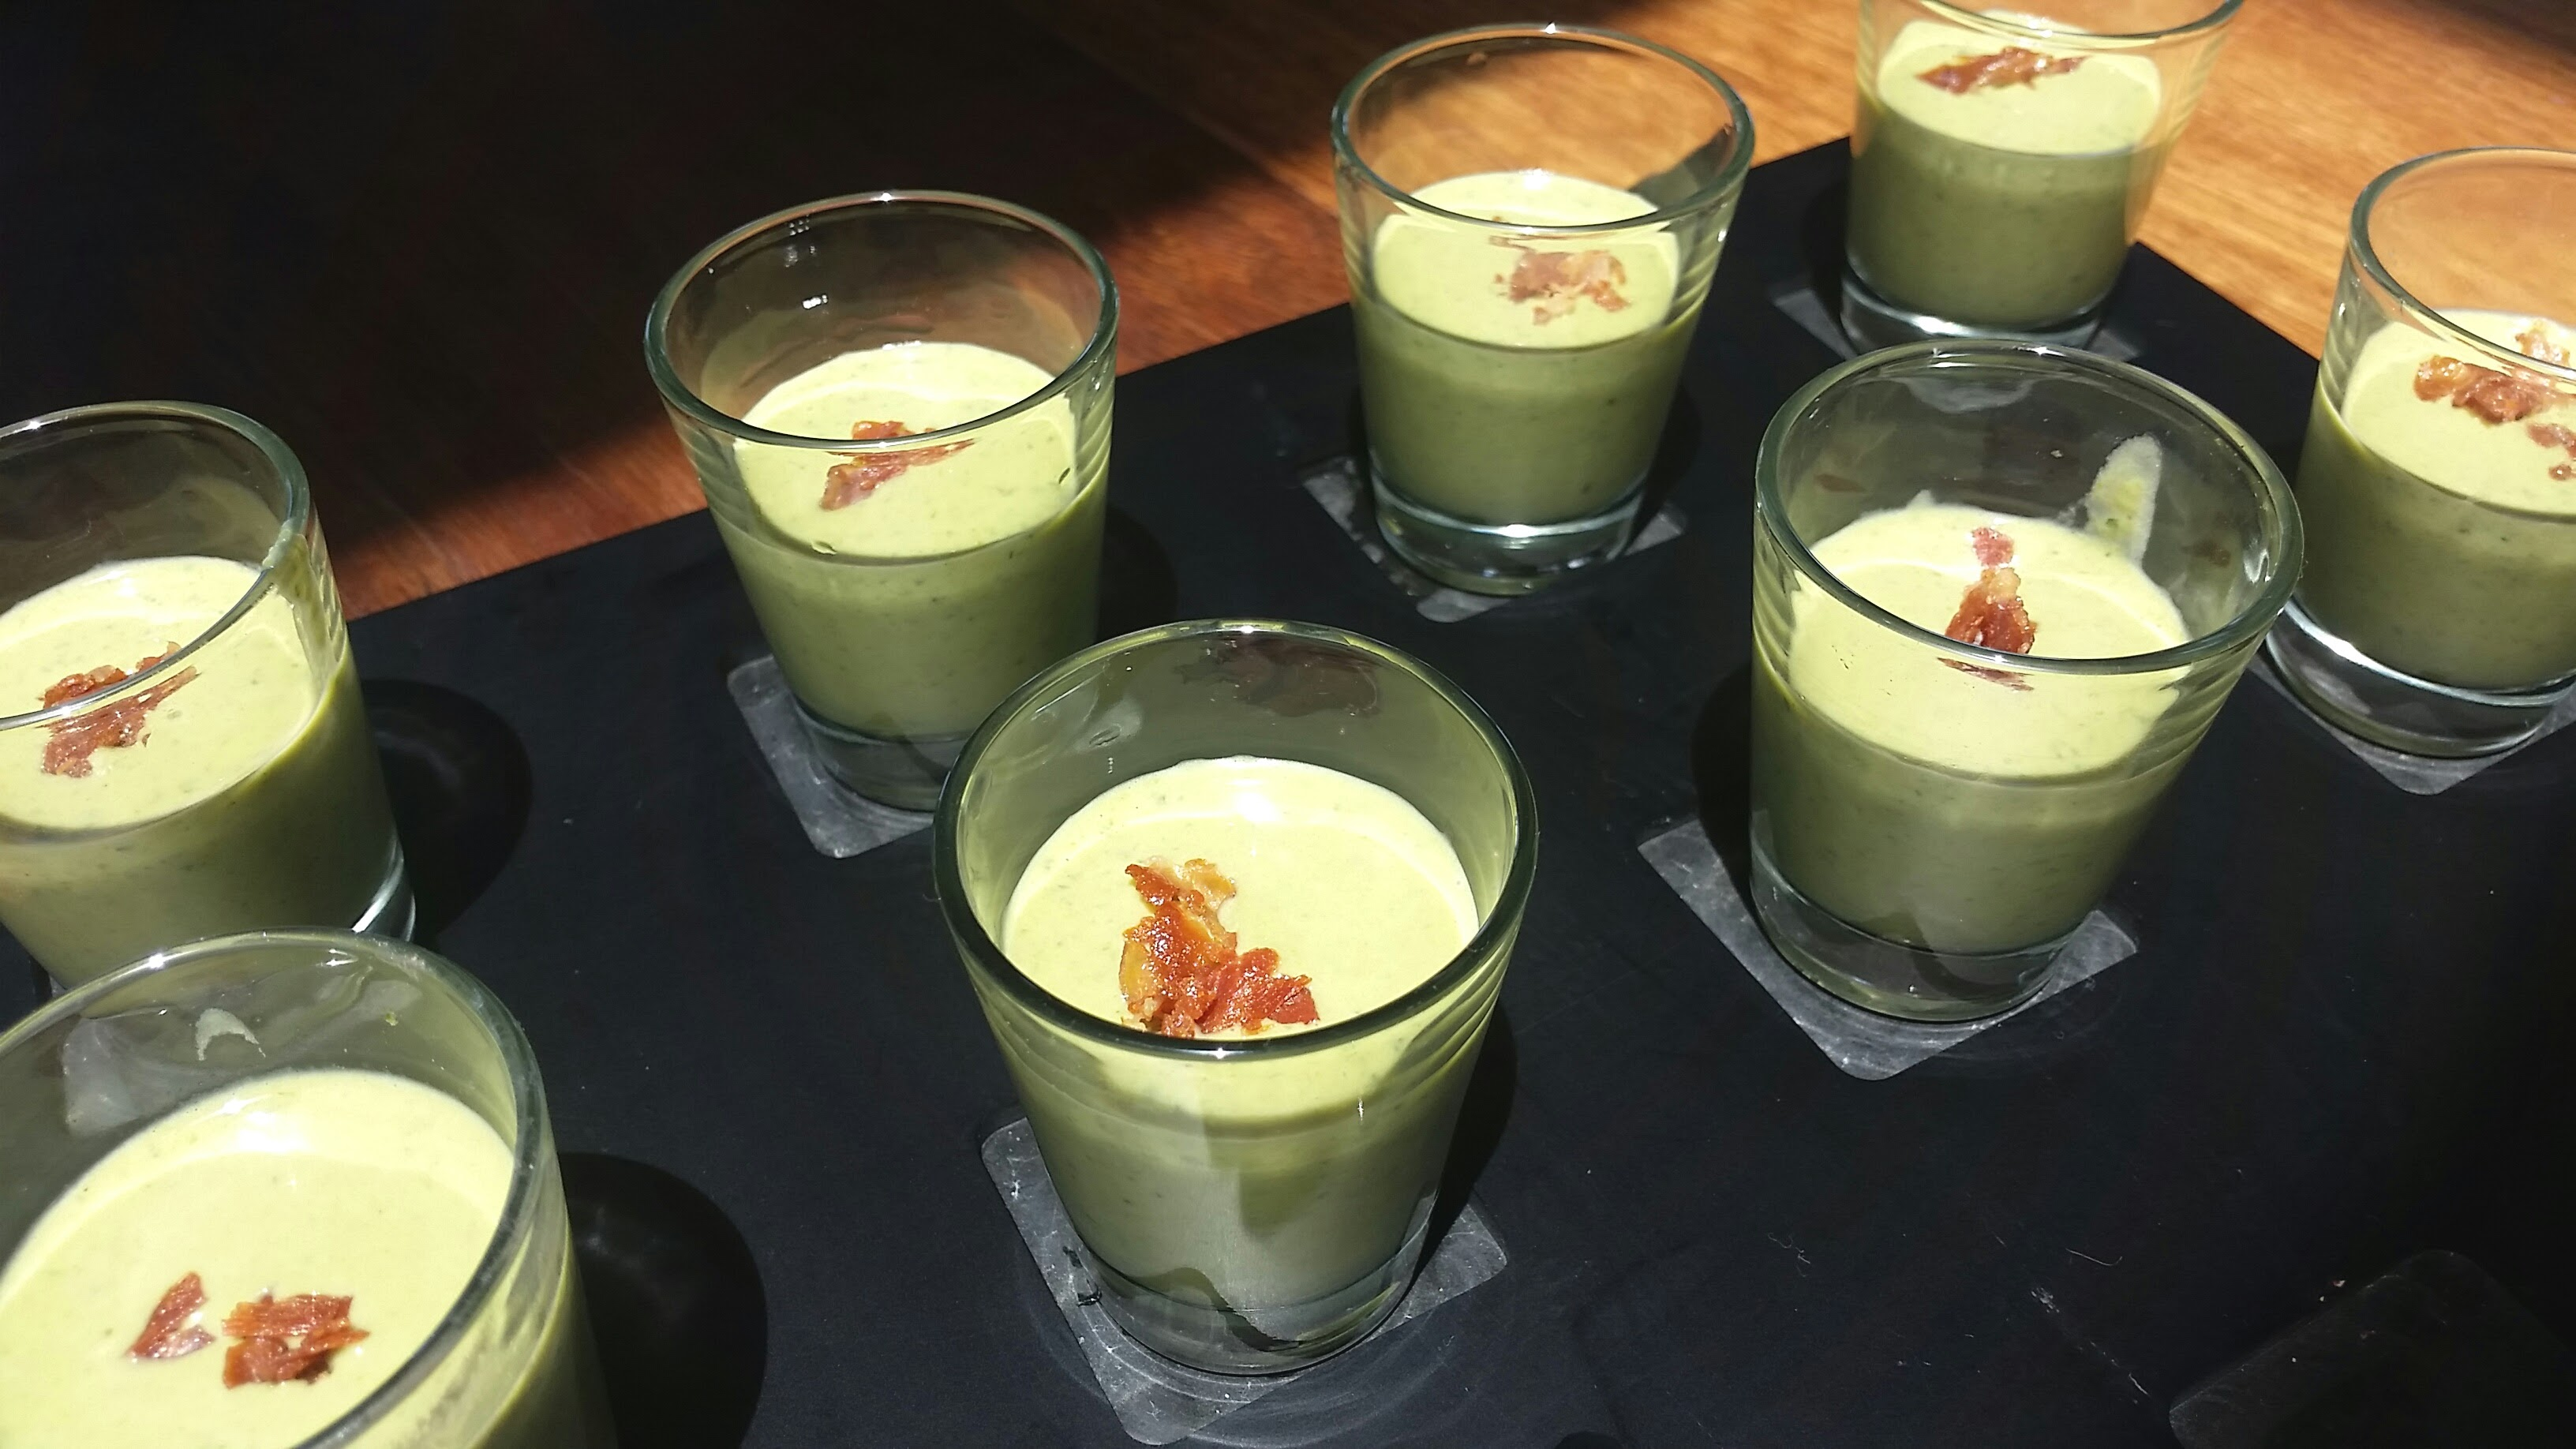 Cold pea soup shooters